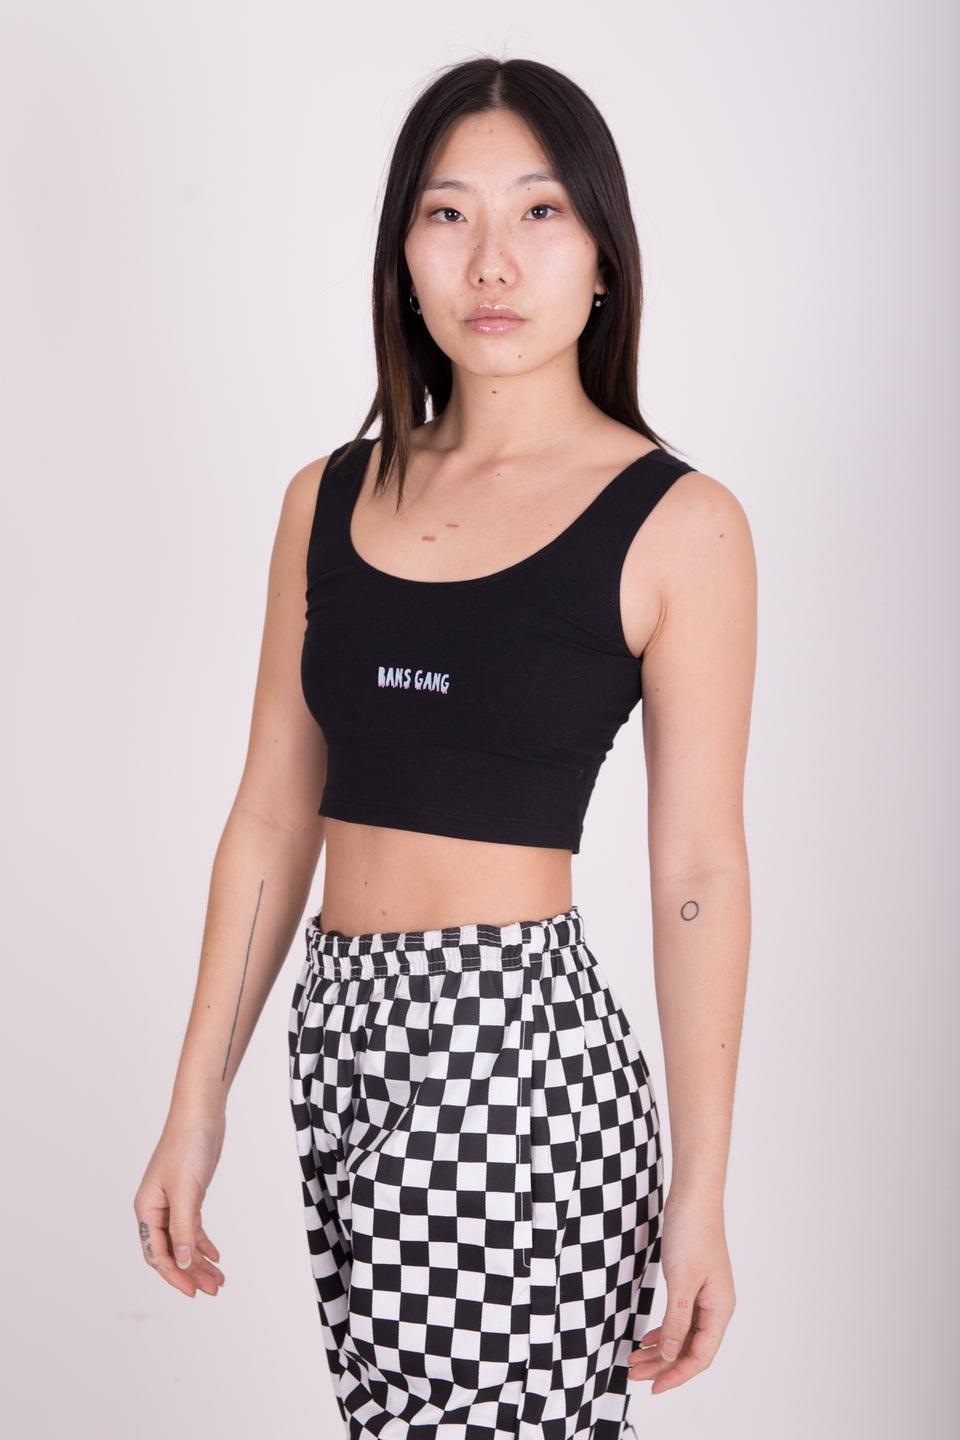 BANS GANG CROP TOP